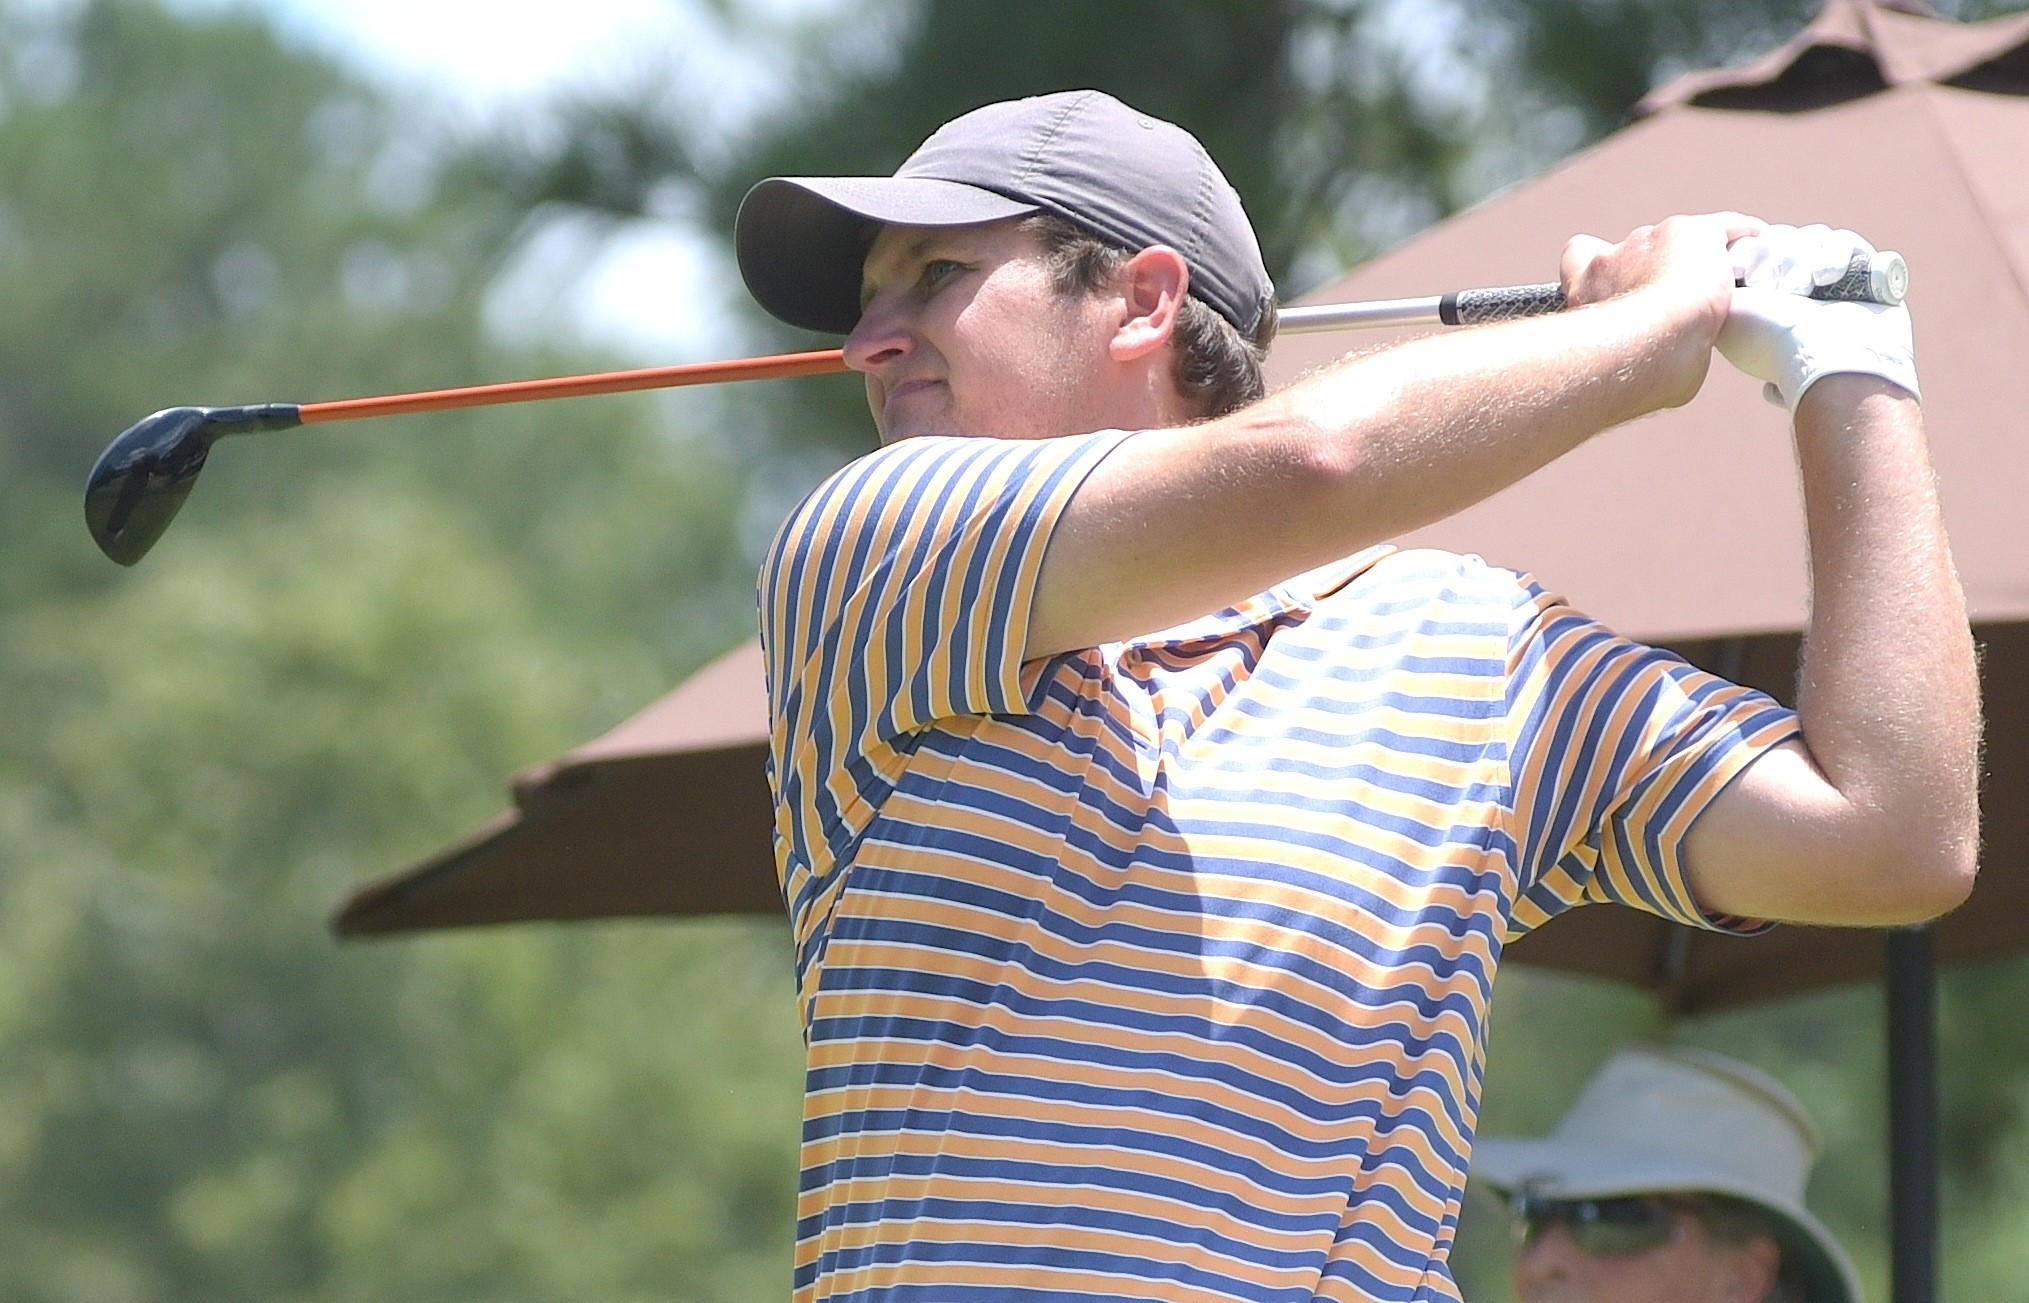 Clay Guerin watches his drive on the first hole during the 50th Annual Travis Hudson/Bernard Weinstein Invitational at Musgrove County Club. Guerin won the tournament with a 199 total.